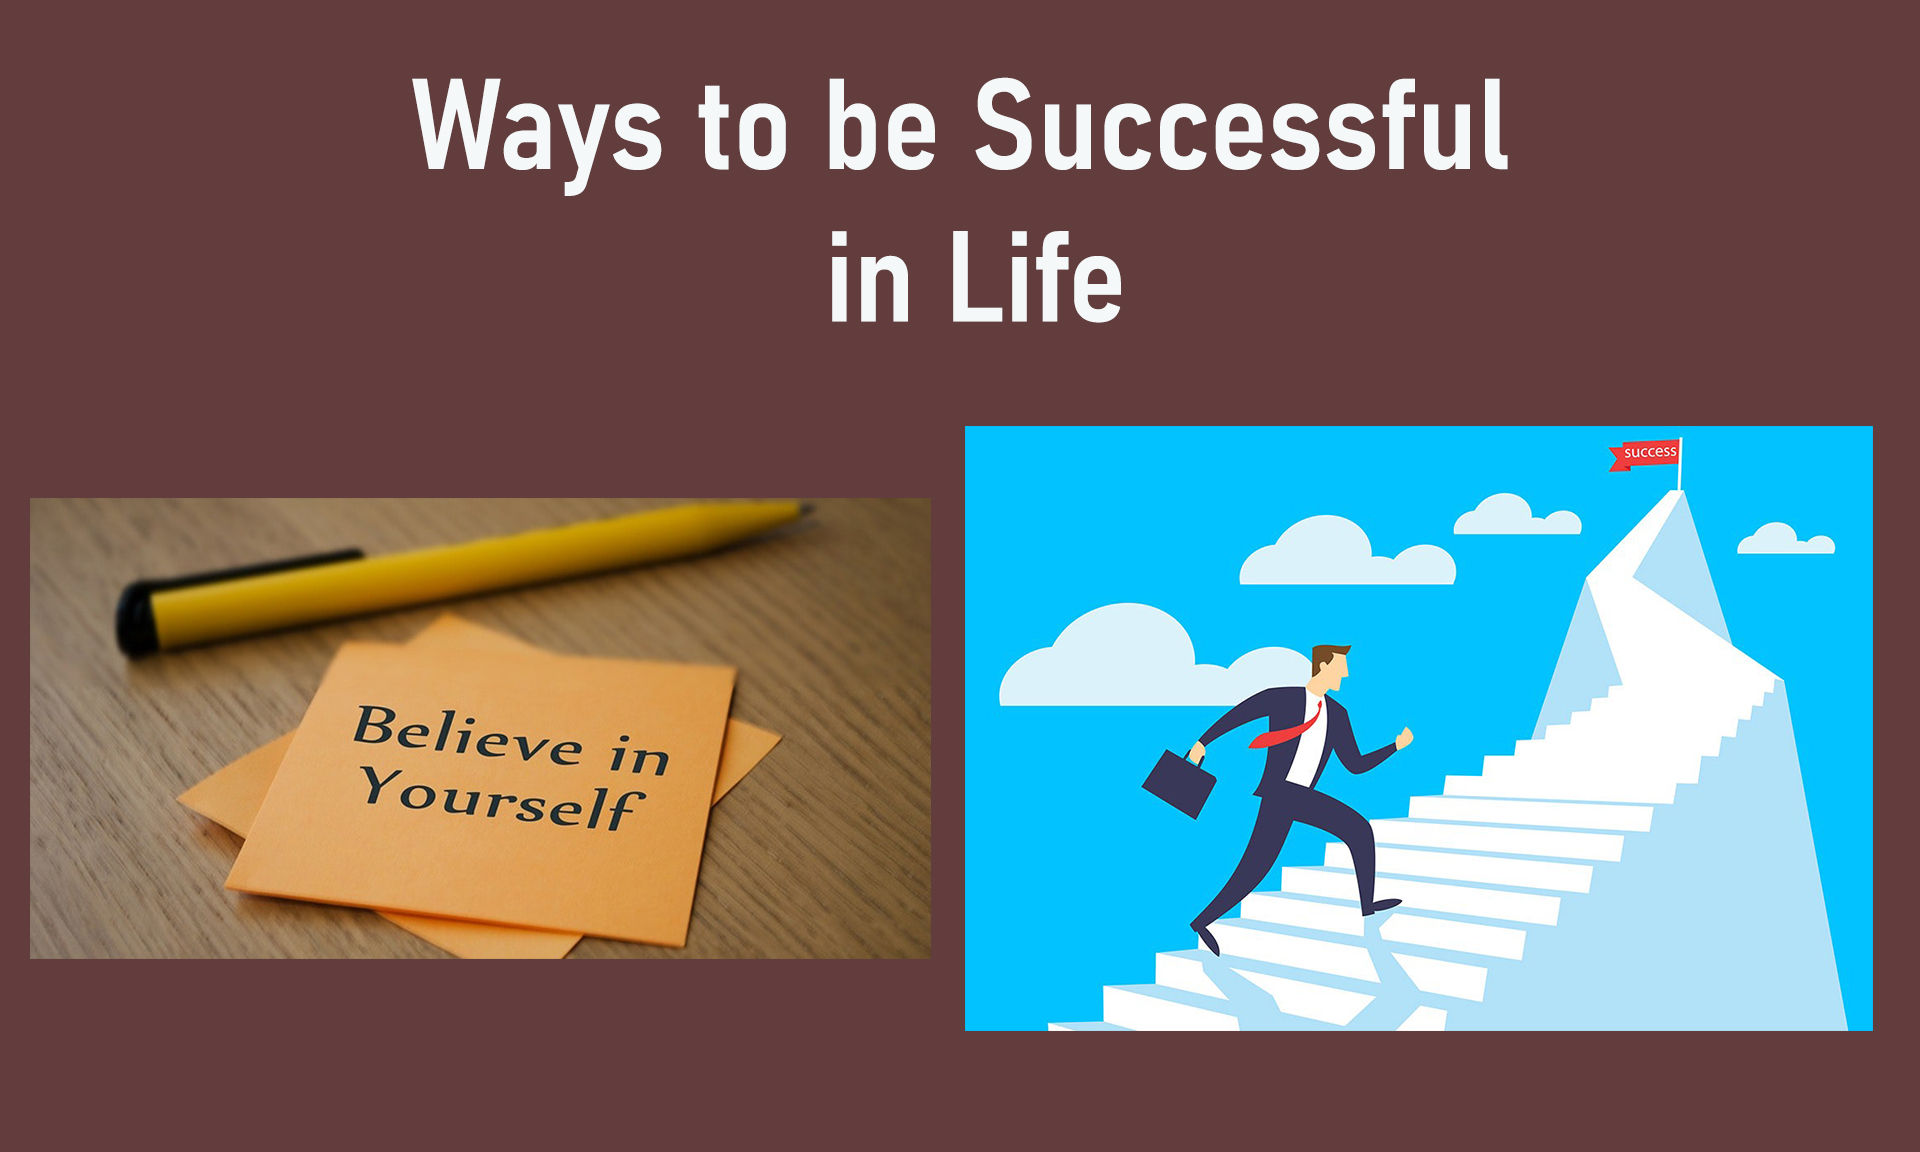 Ways-to-be-Successful-in-Life